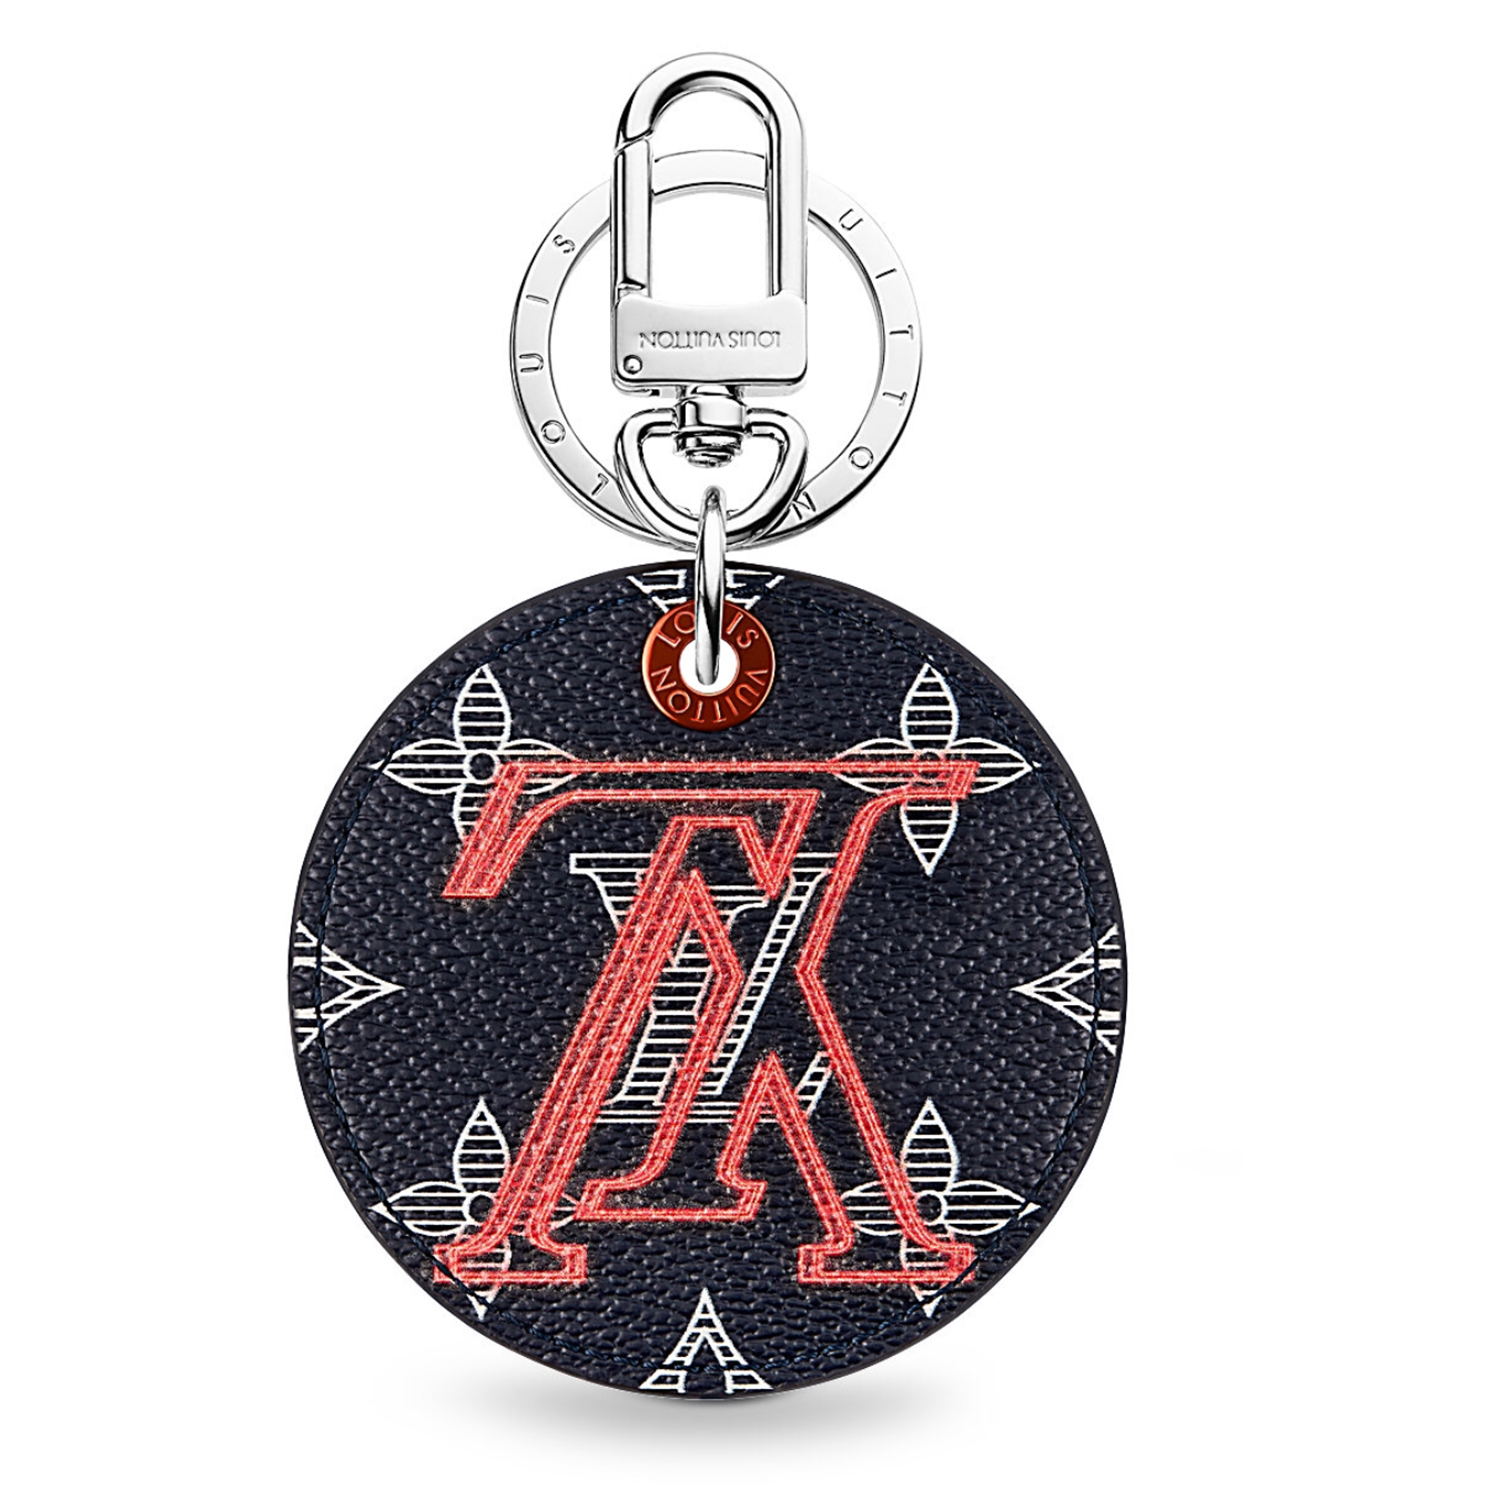 LV UPSIDE DOWN CHARM - €175 $260MP1988MONOGRAM INK